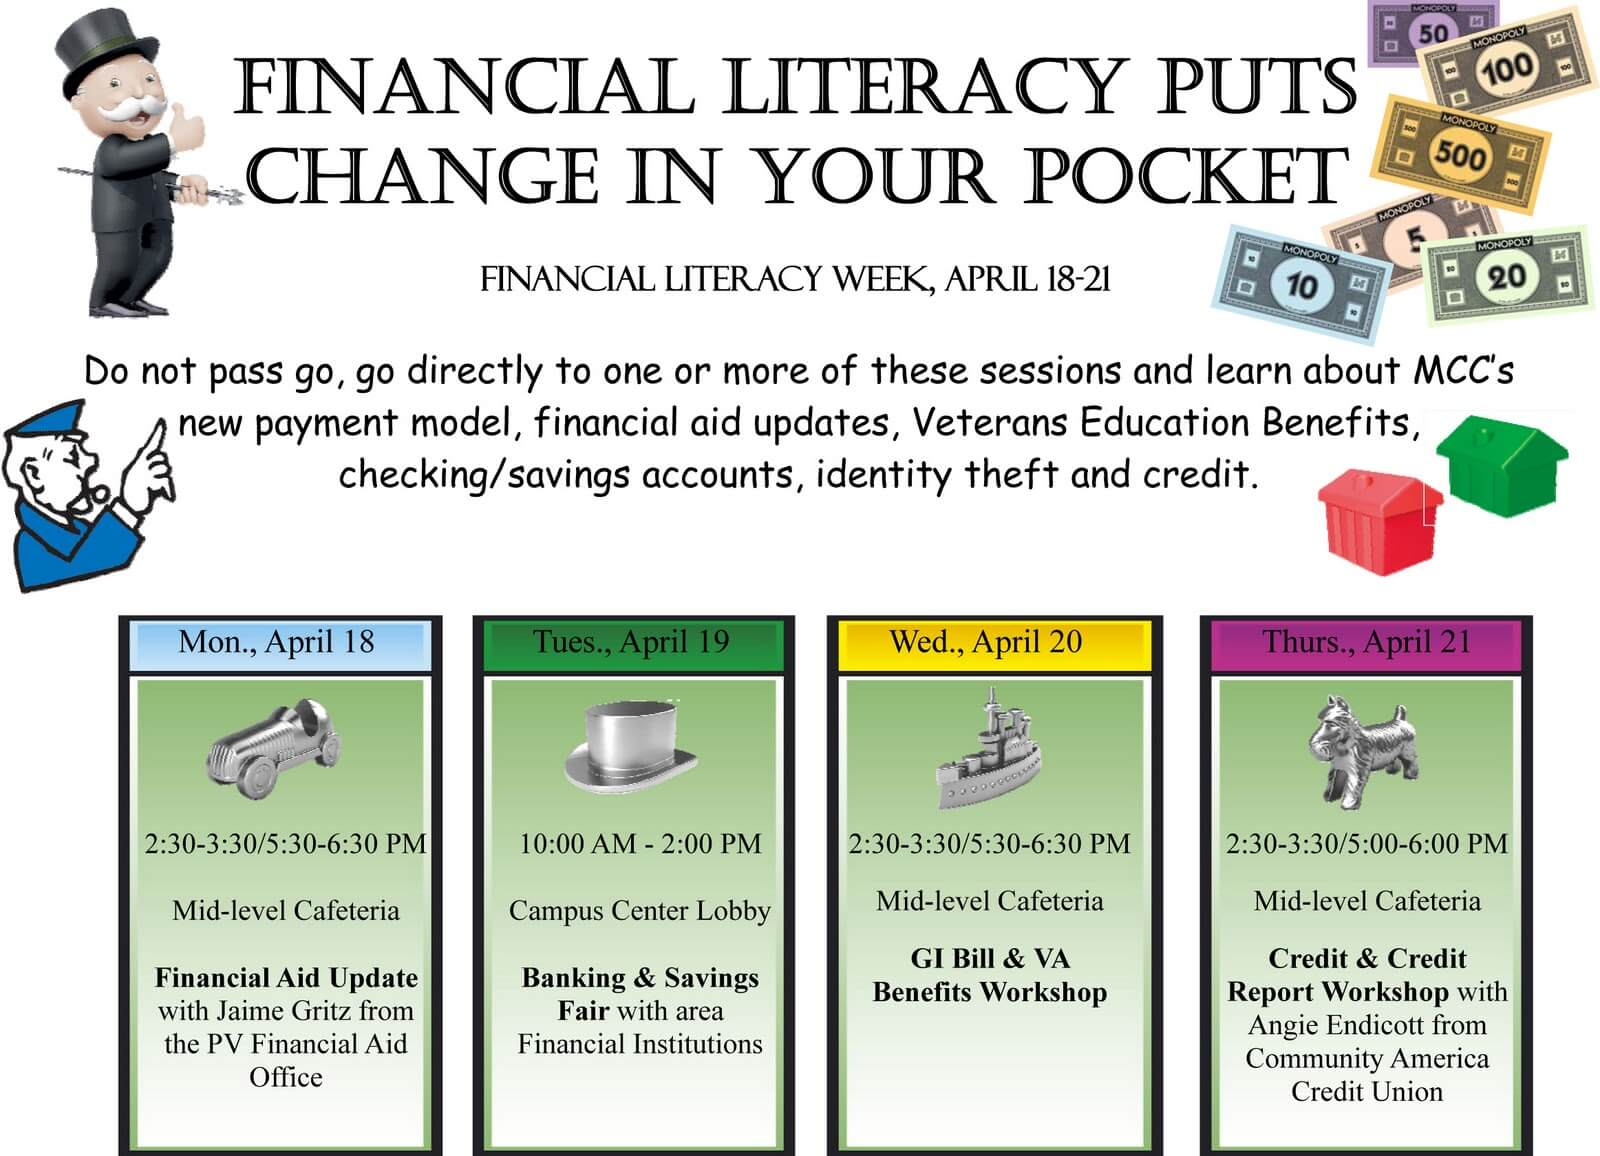 benefits of Financial Literacy